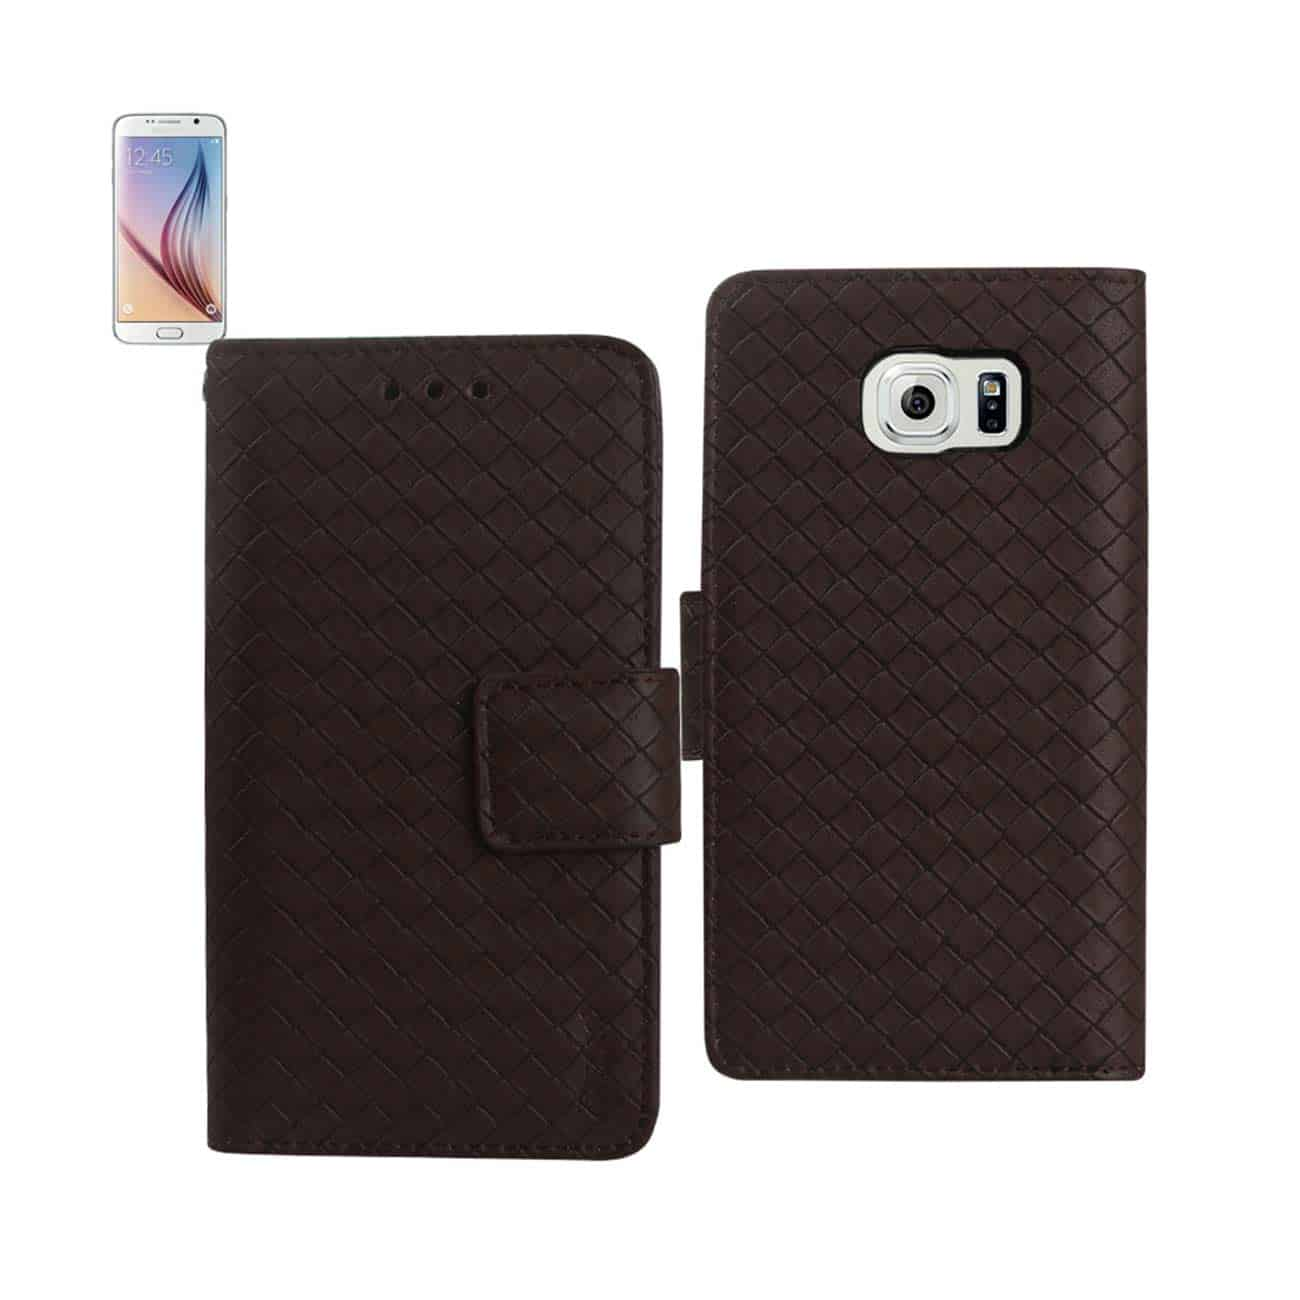 SAMSUNG GALAXY S6 BRAIDED WALLET CASE IN BROWN